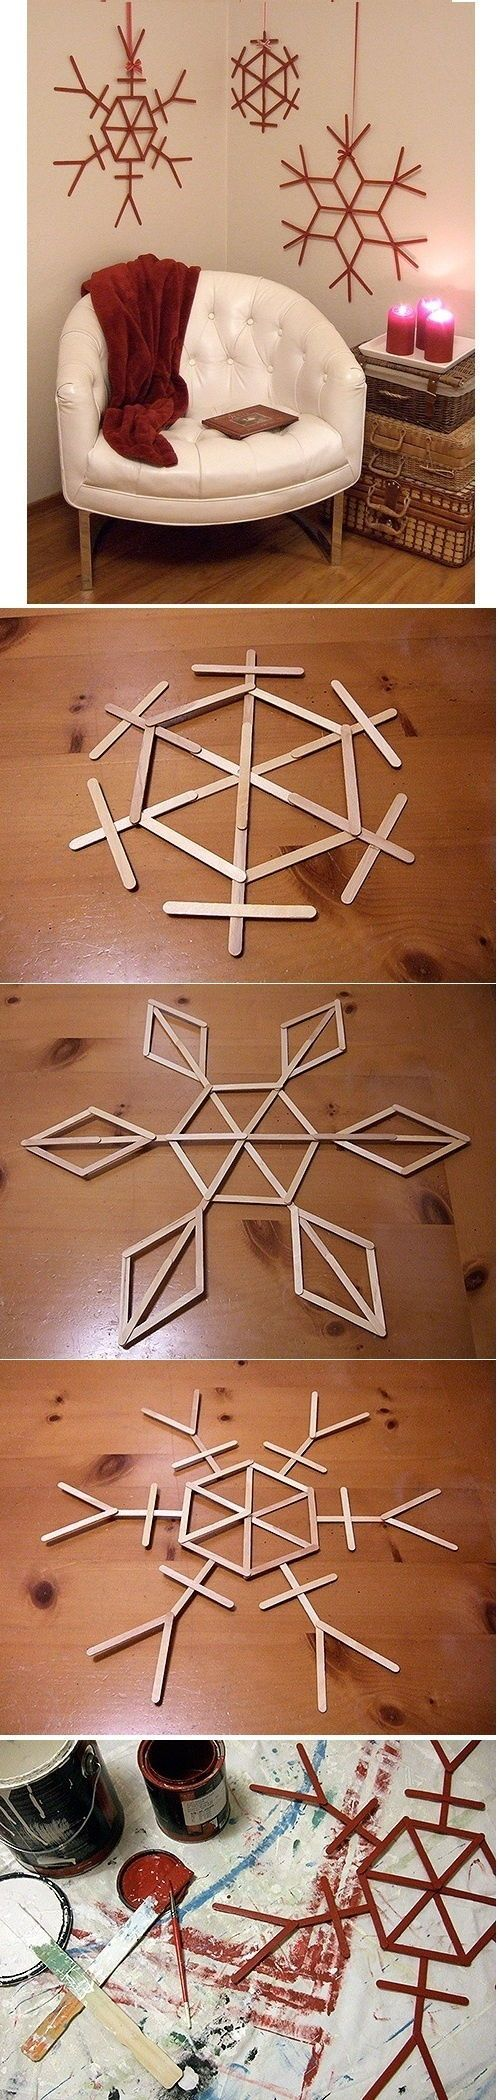 DIY Popsicle Stick Snowflakes DIY Popsicle Stick Snowflakes. Fun craft for the girls.